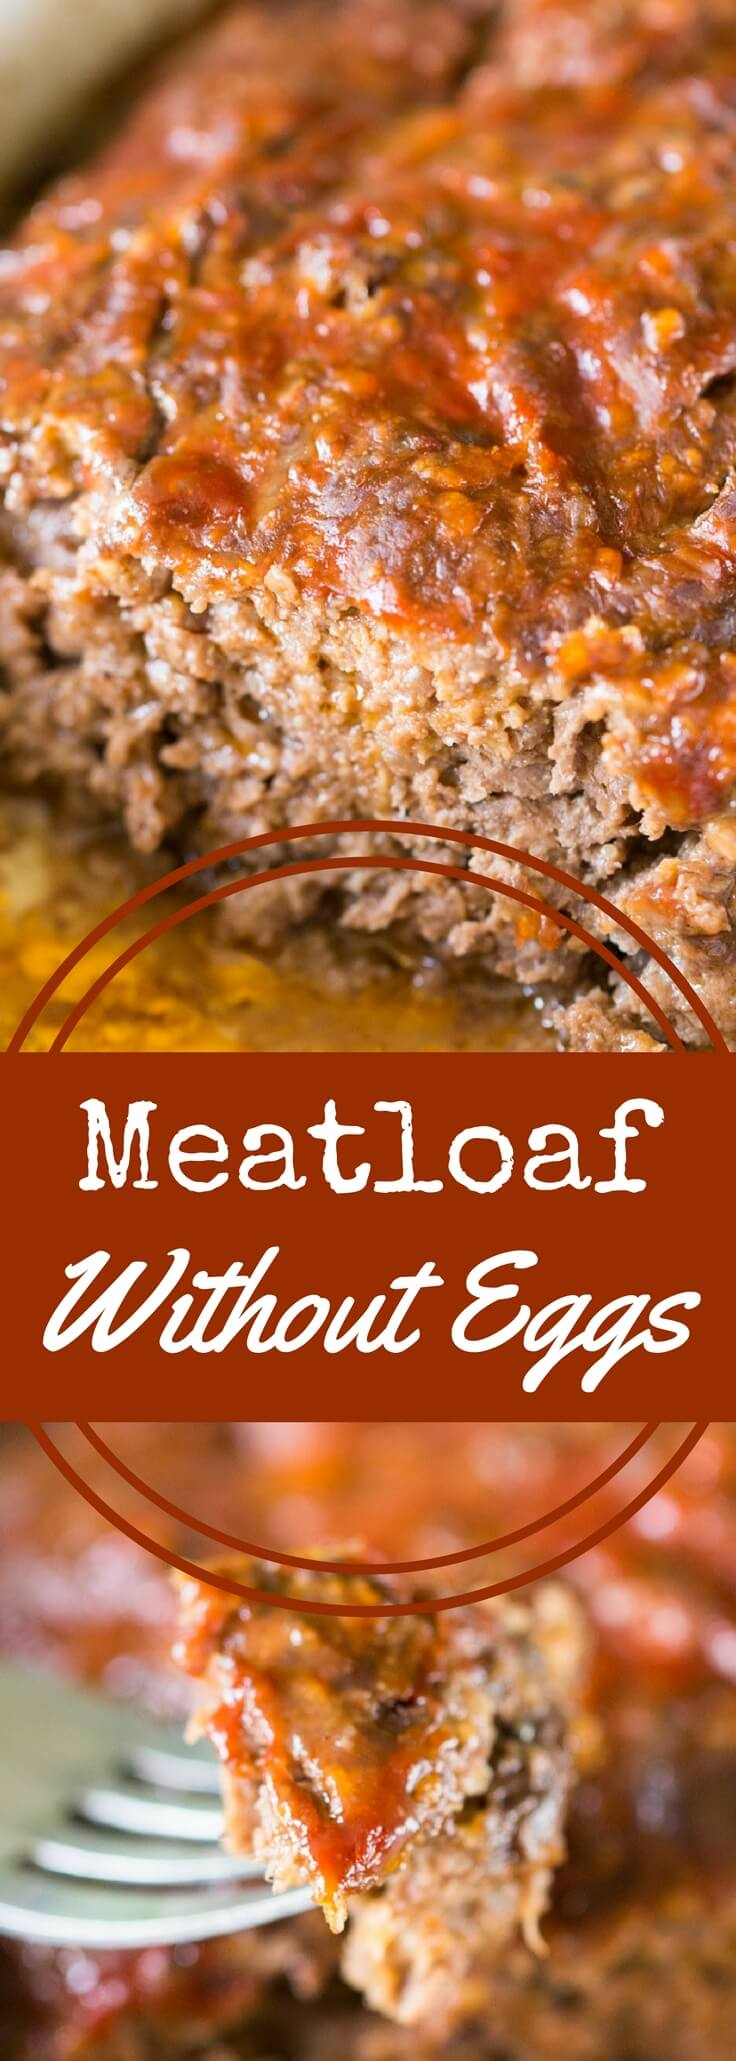 Meatloaf without eggs is quick and easy to make.  This meatloaf recipe has only four ingredients (no eggs, of course) and will be ready to bake in minutes.